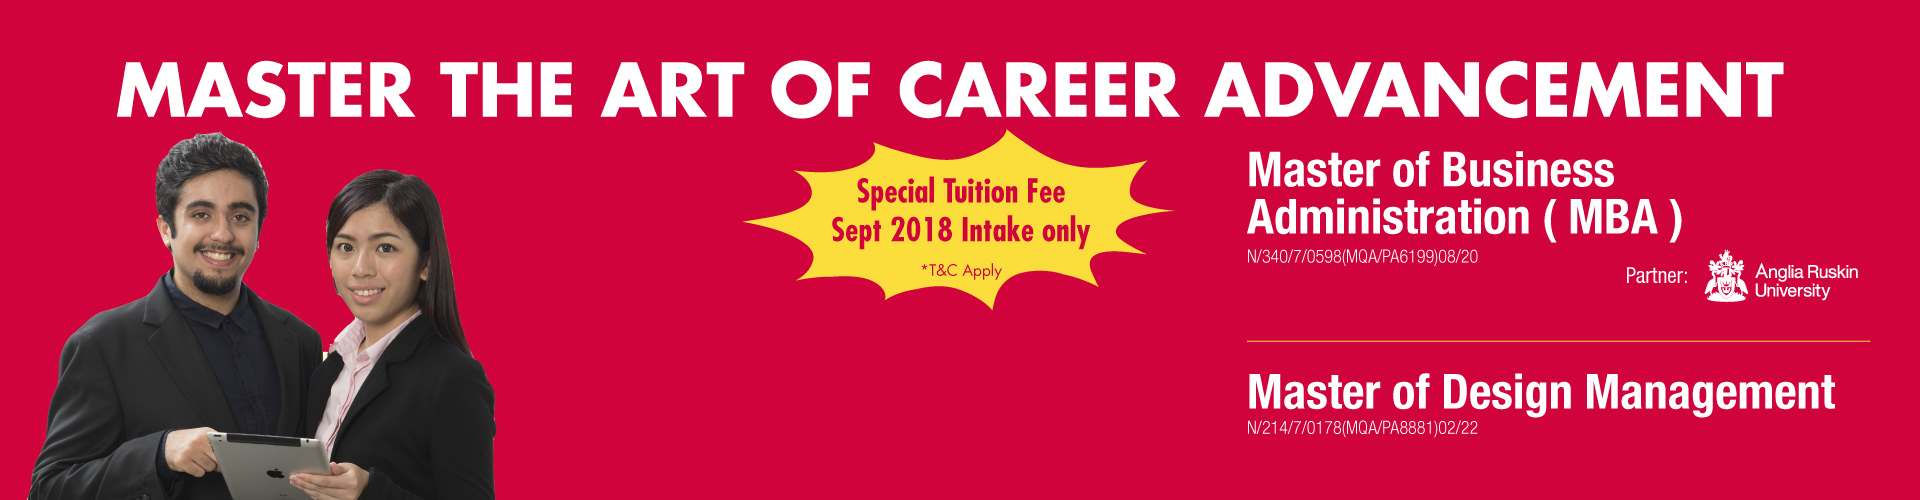 postgradasia-institution-firstcityuc-special-tuition-fee-banner-2018